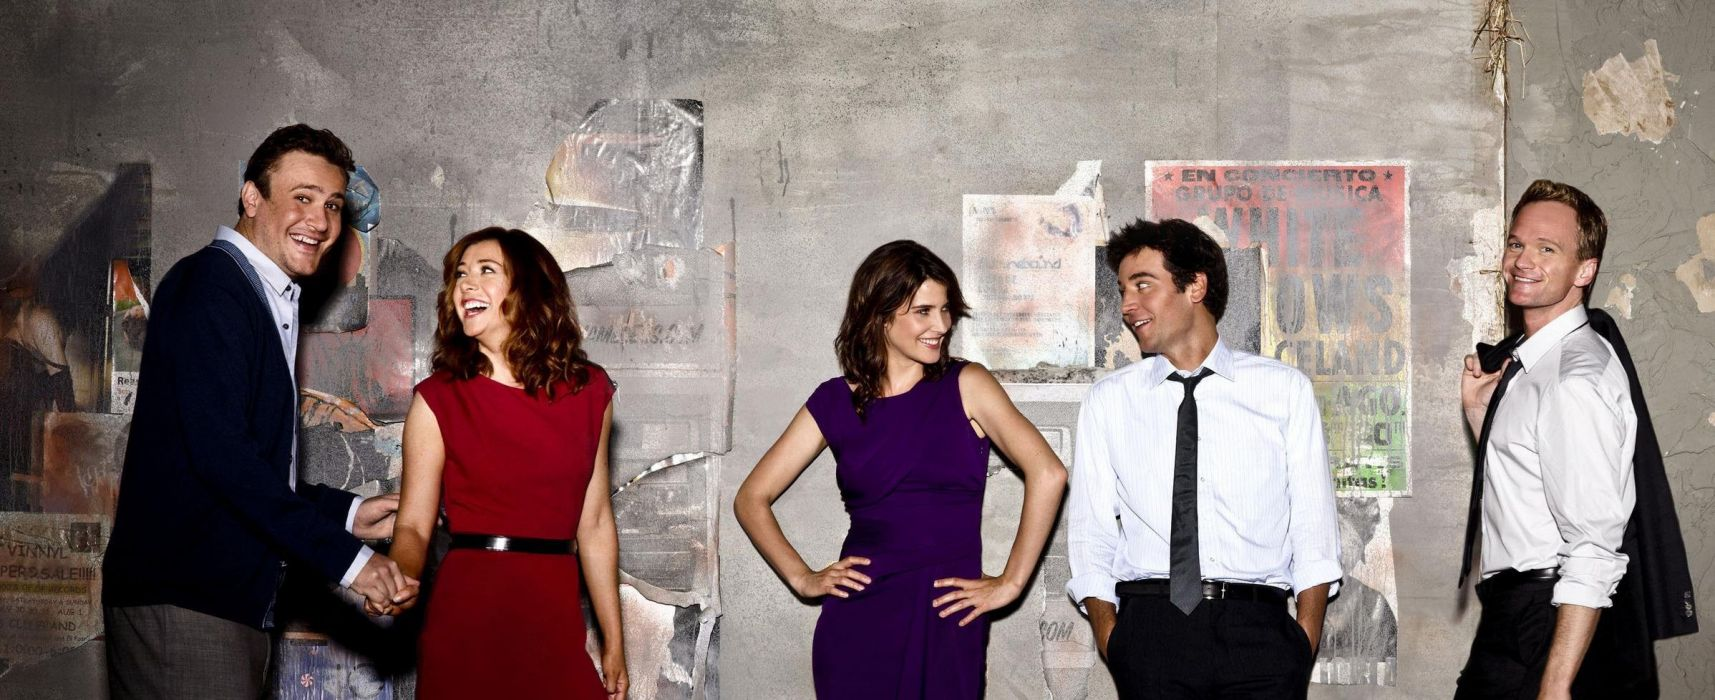 How I Met Your Mother Wallpapers